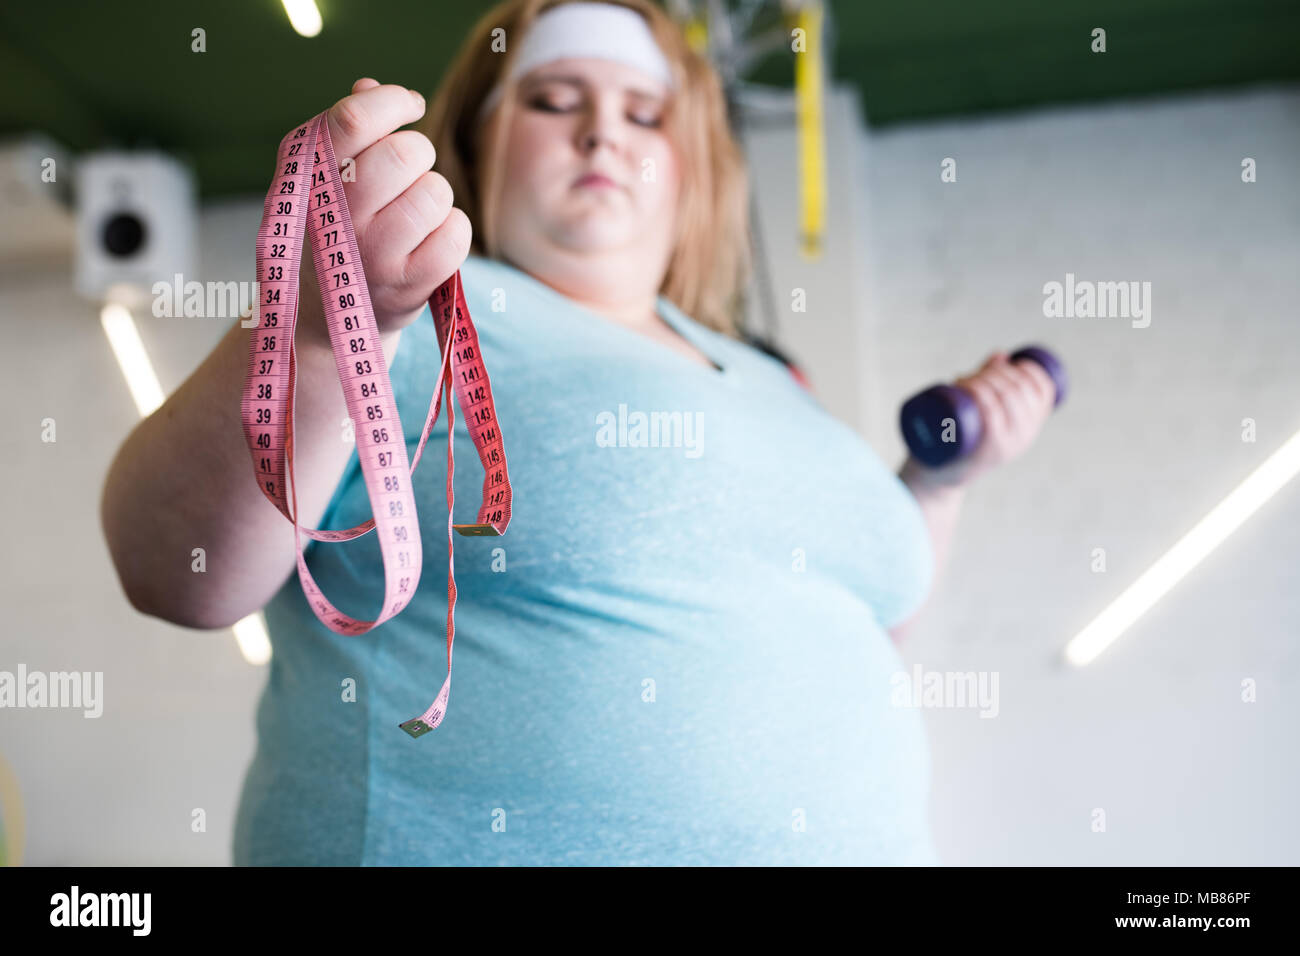 Anxious Obese Woman with Tape Measure - Stock Image